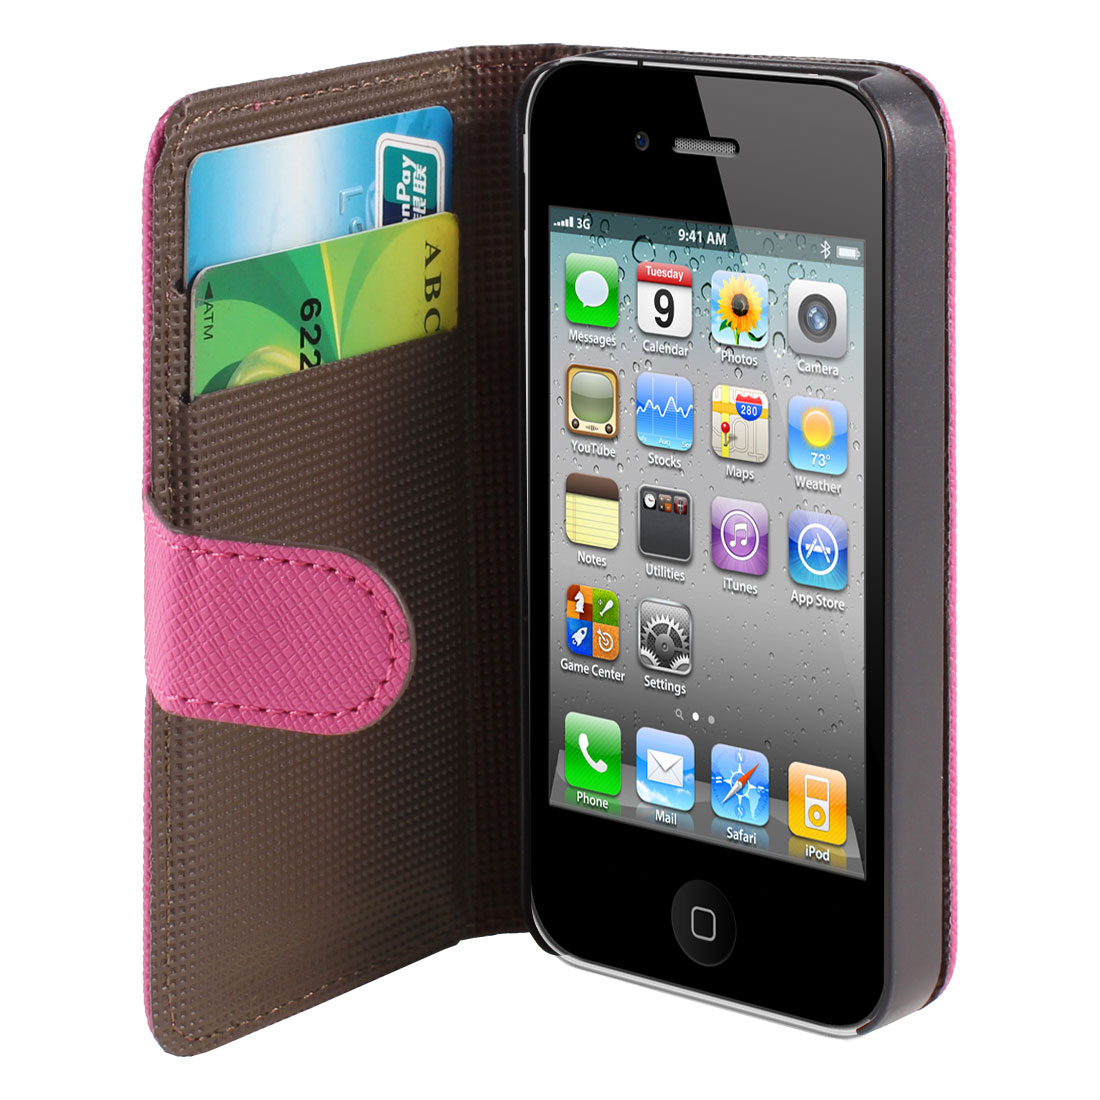 Fuchsia Textured PU Leather Magnetic Flip Case Cover for Apple iPhone 4 4S 4GS 4G